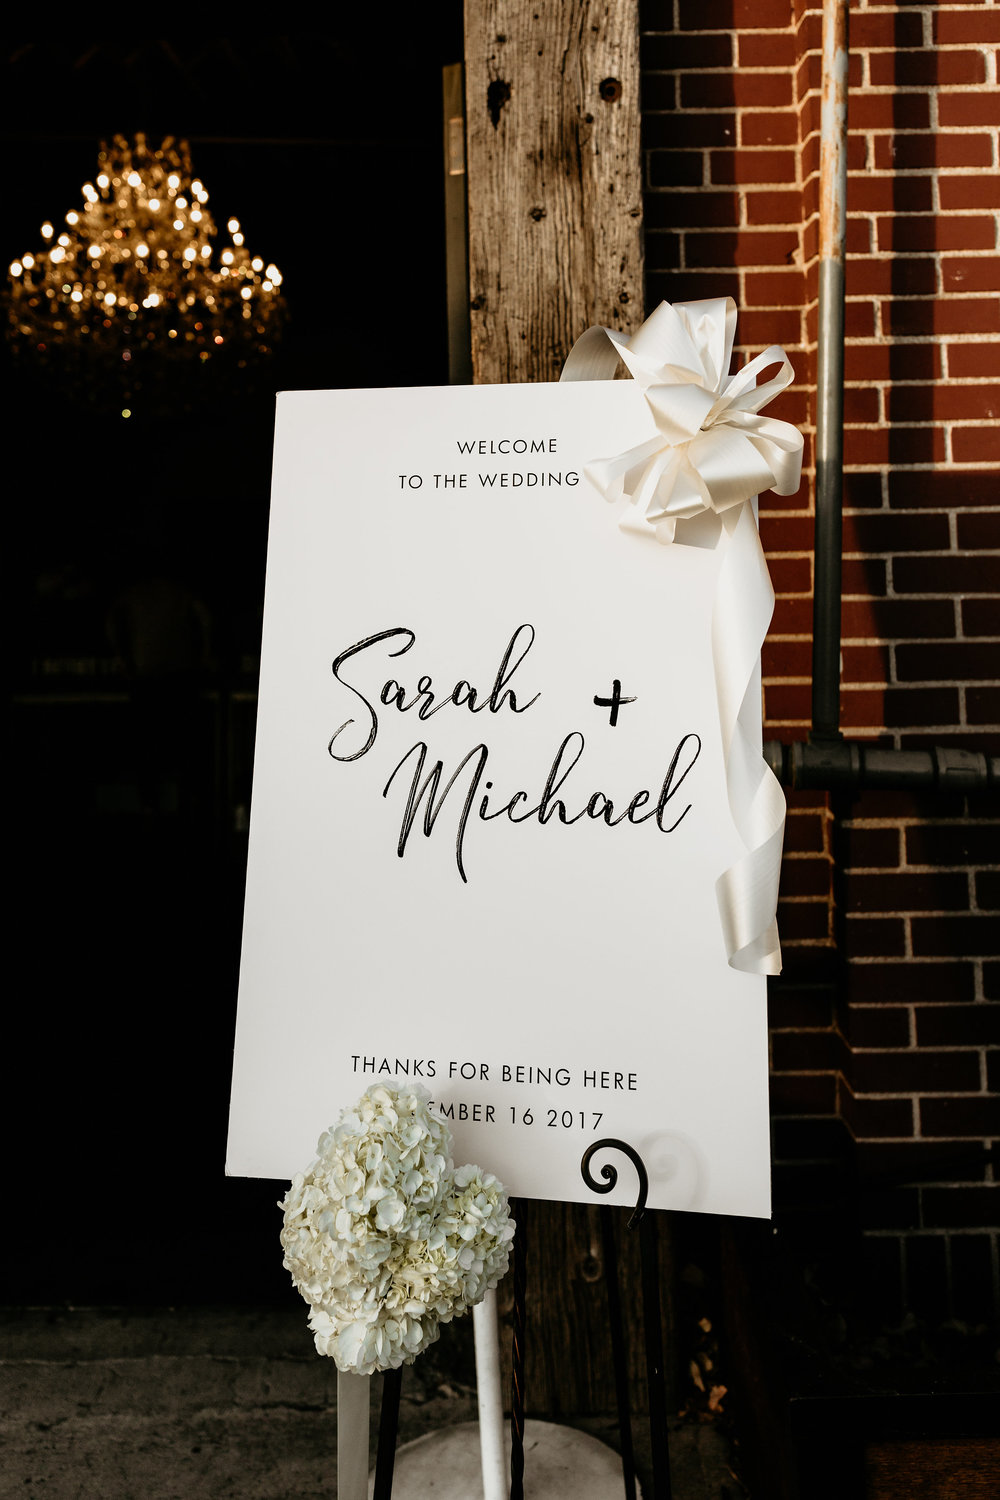 Sarah+MichaelReception-1.jpg